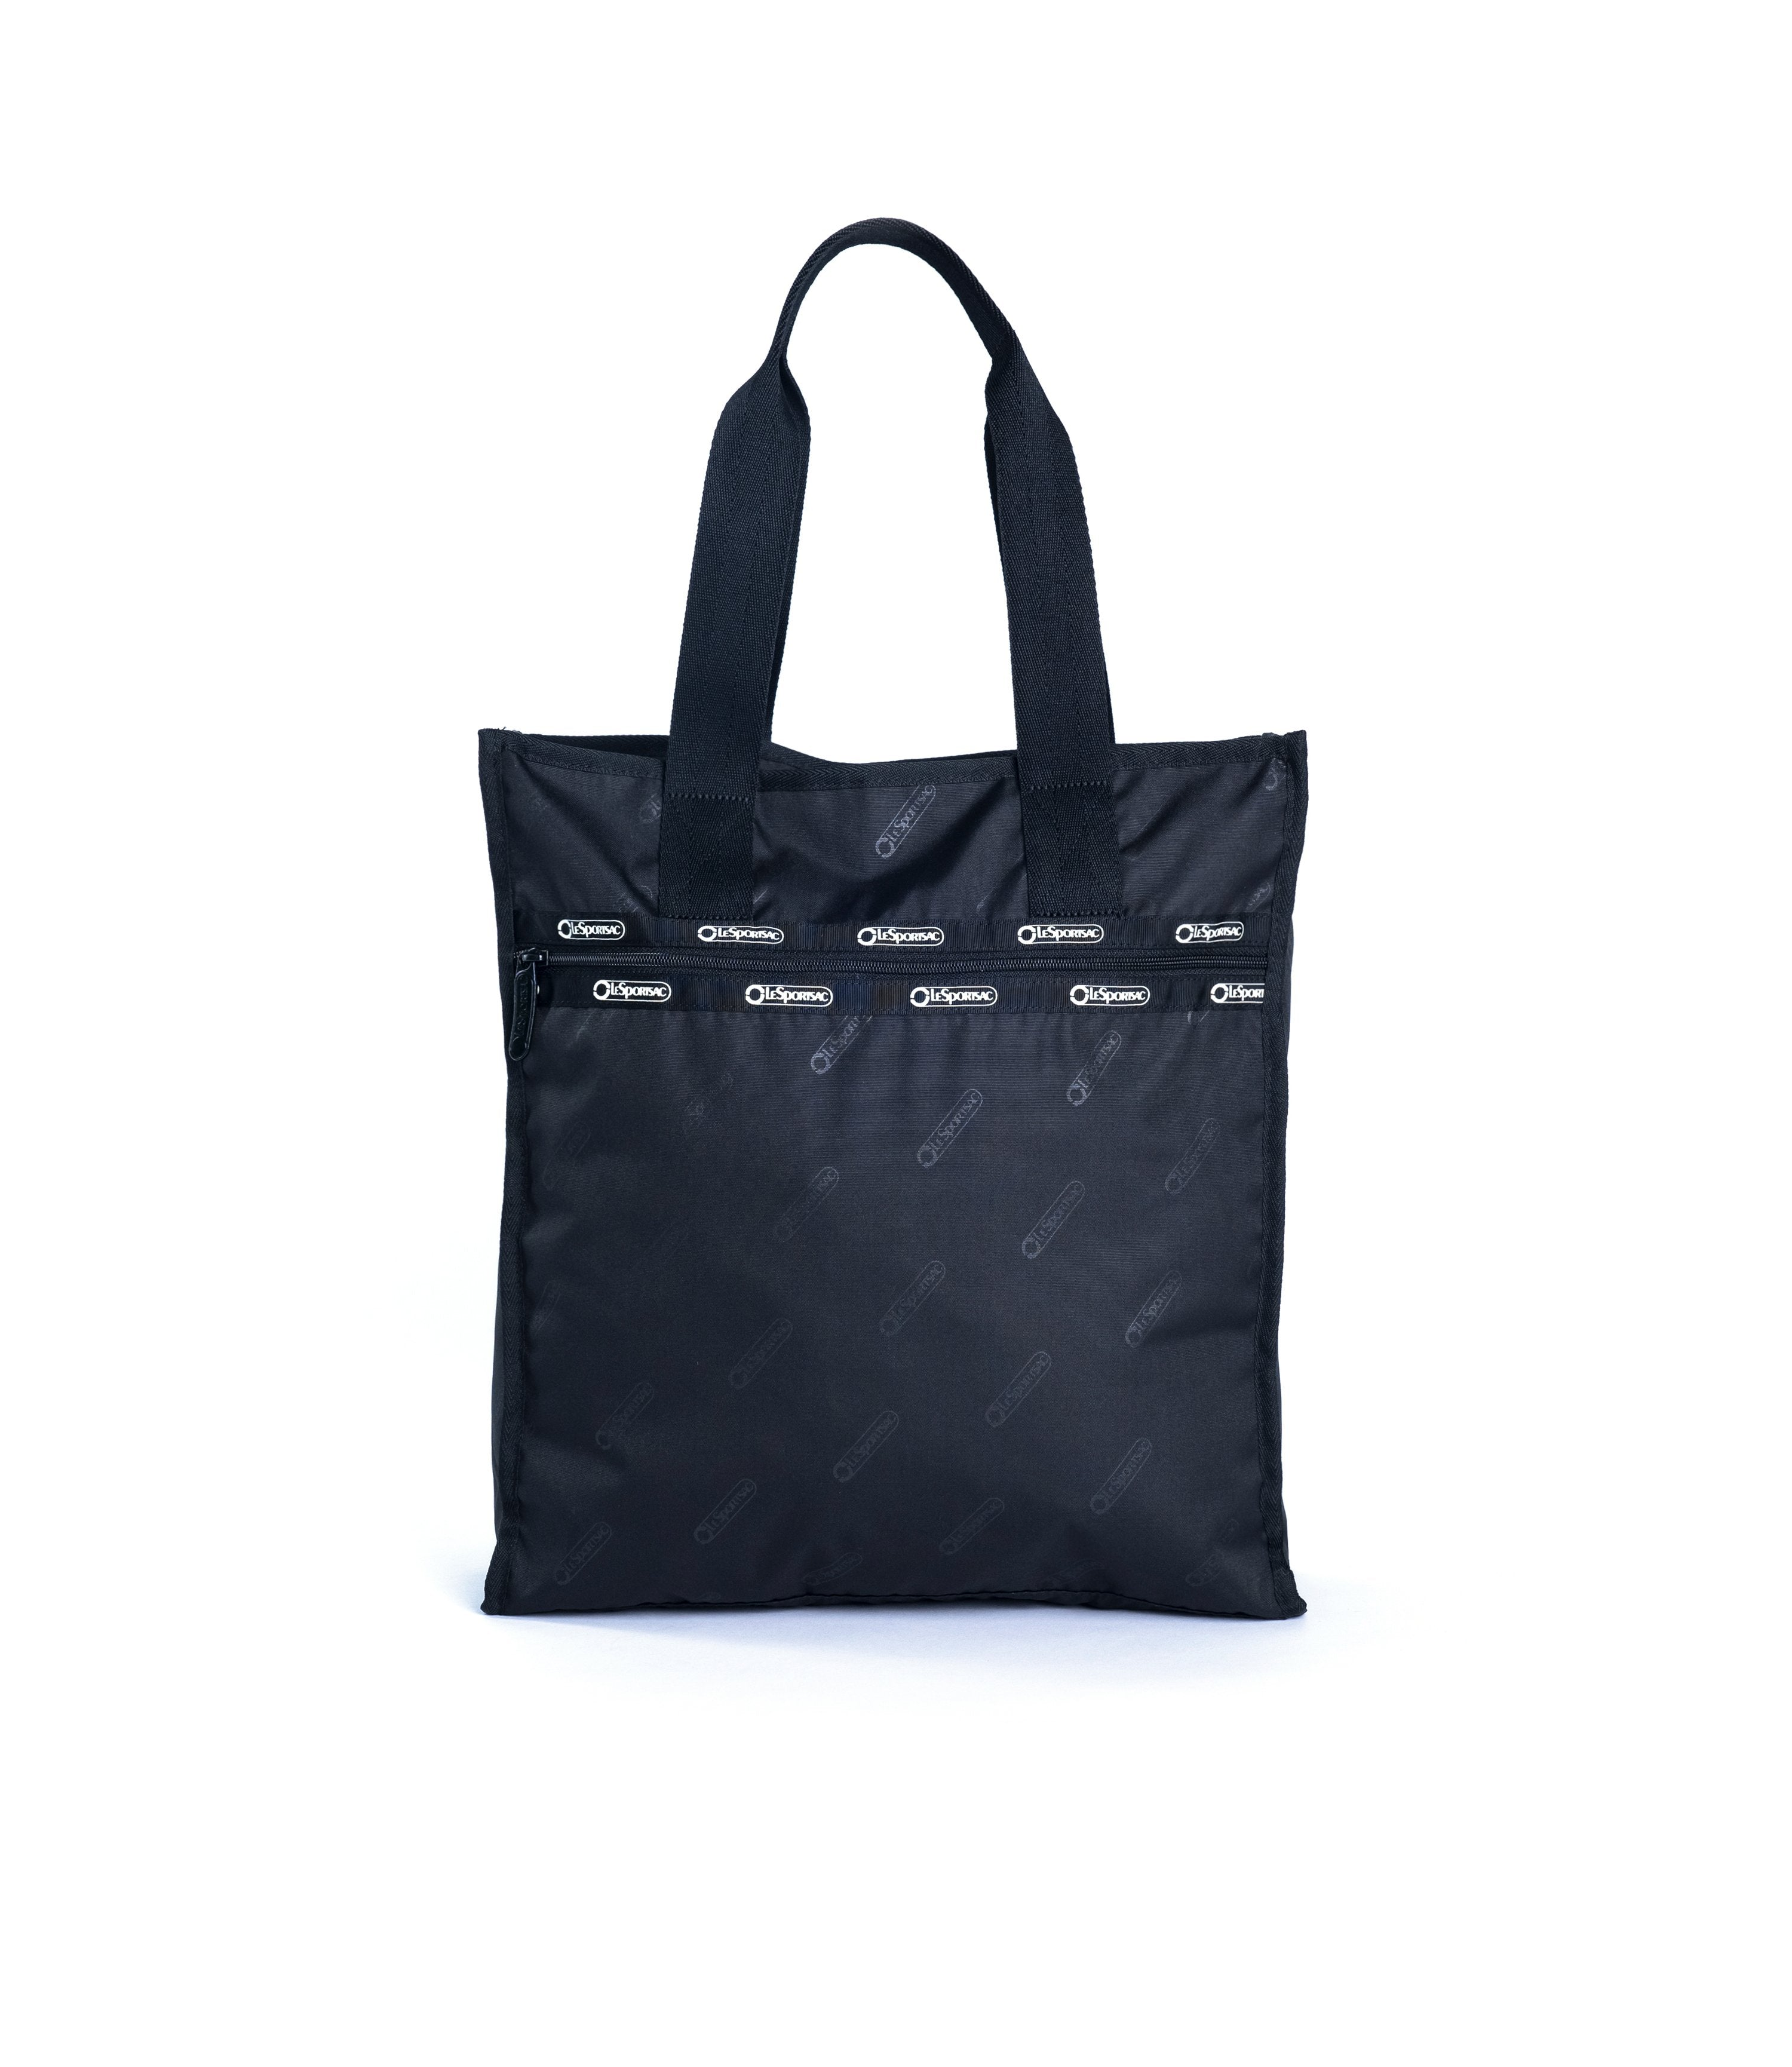 LeSportsac - ReCycled Large North/South Tote - Totes - Eco Black